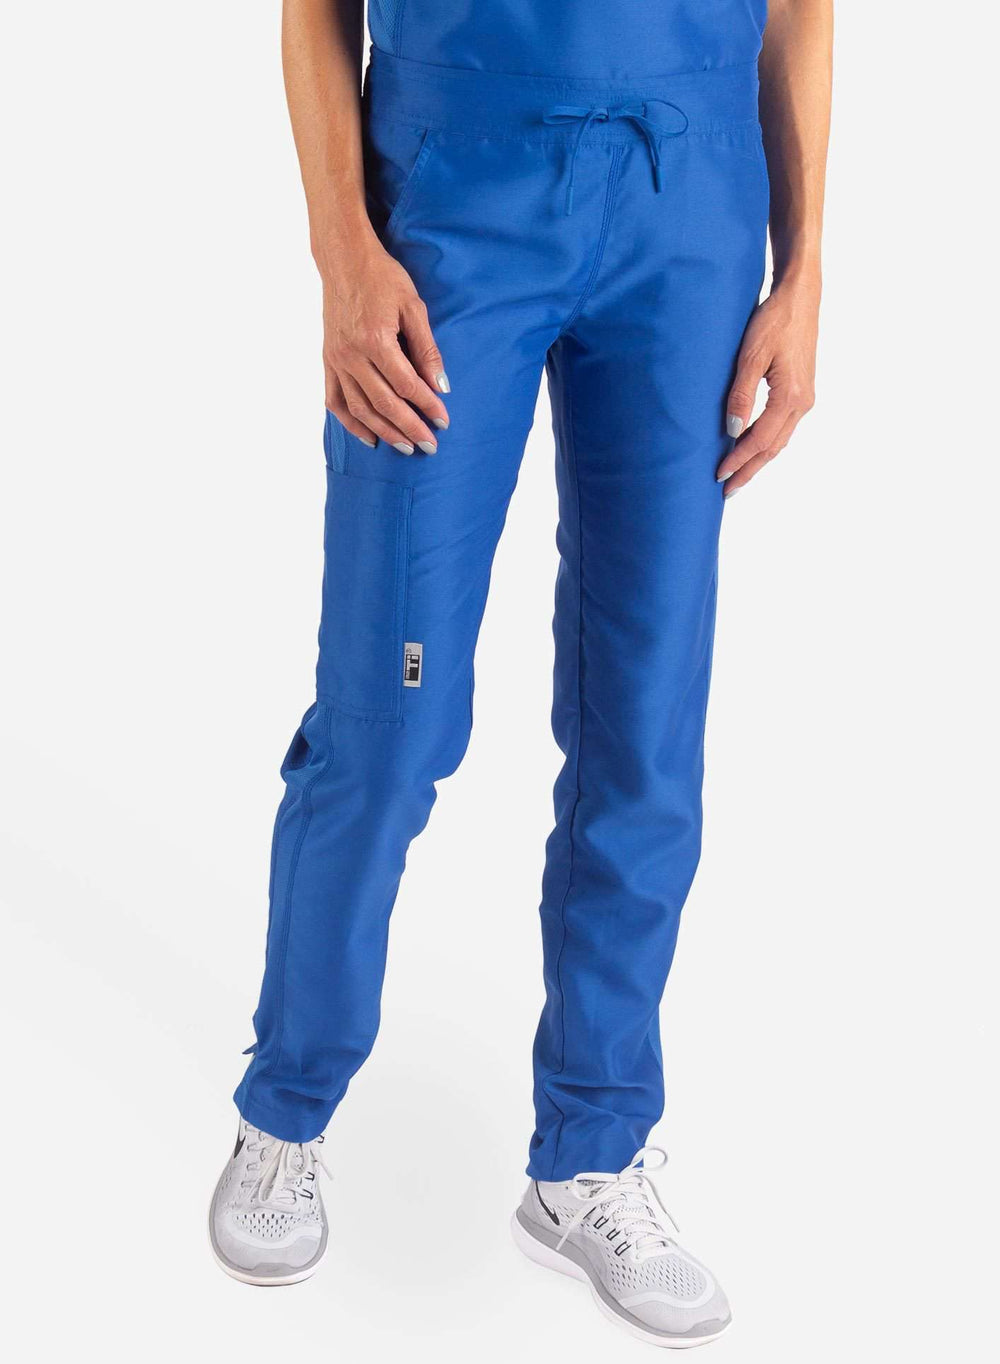 Women's Slim Fit Scrub Pants in Royal Blue